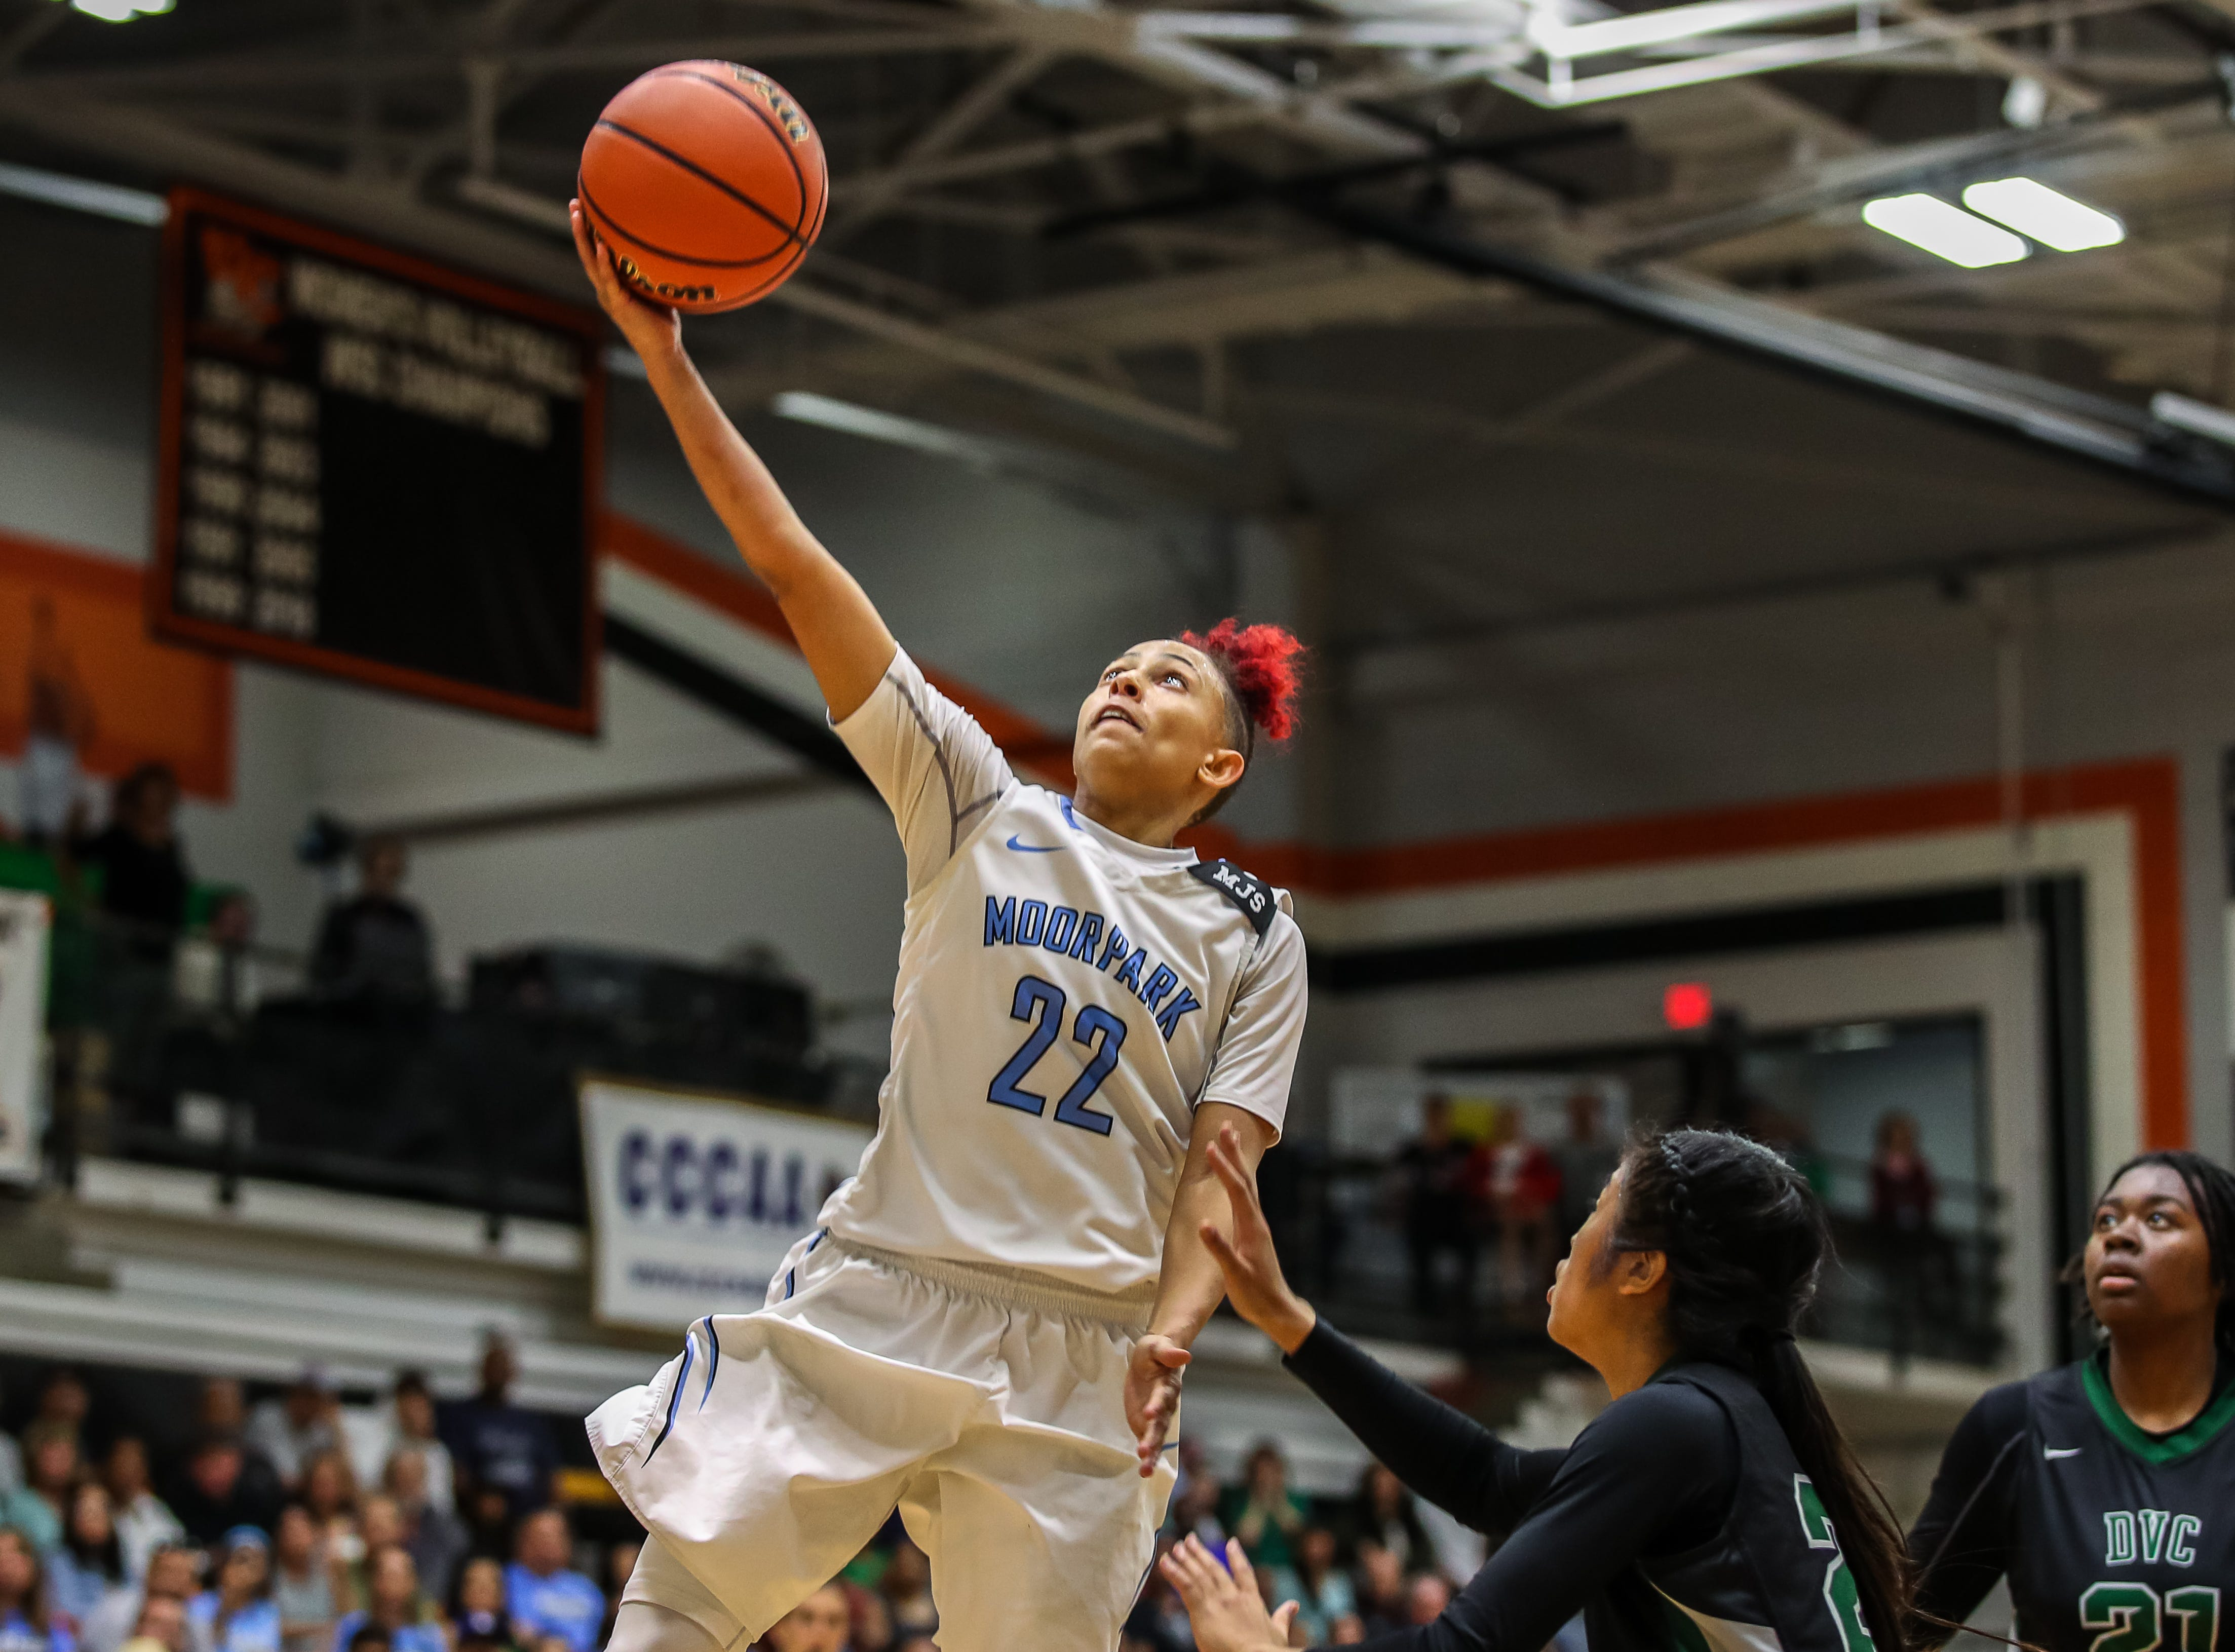 Moorpark College's Freshman Breanna Calhoun drives to the hoop against Diablo Valley College during the CCCAA state championship game at Ventura College on Sunday. Moorpark lost, 68-61.